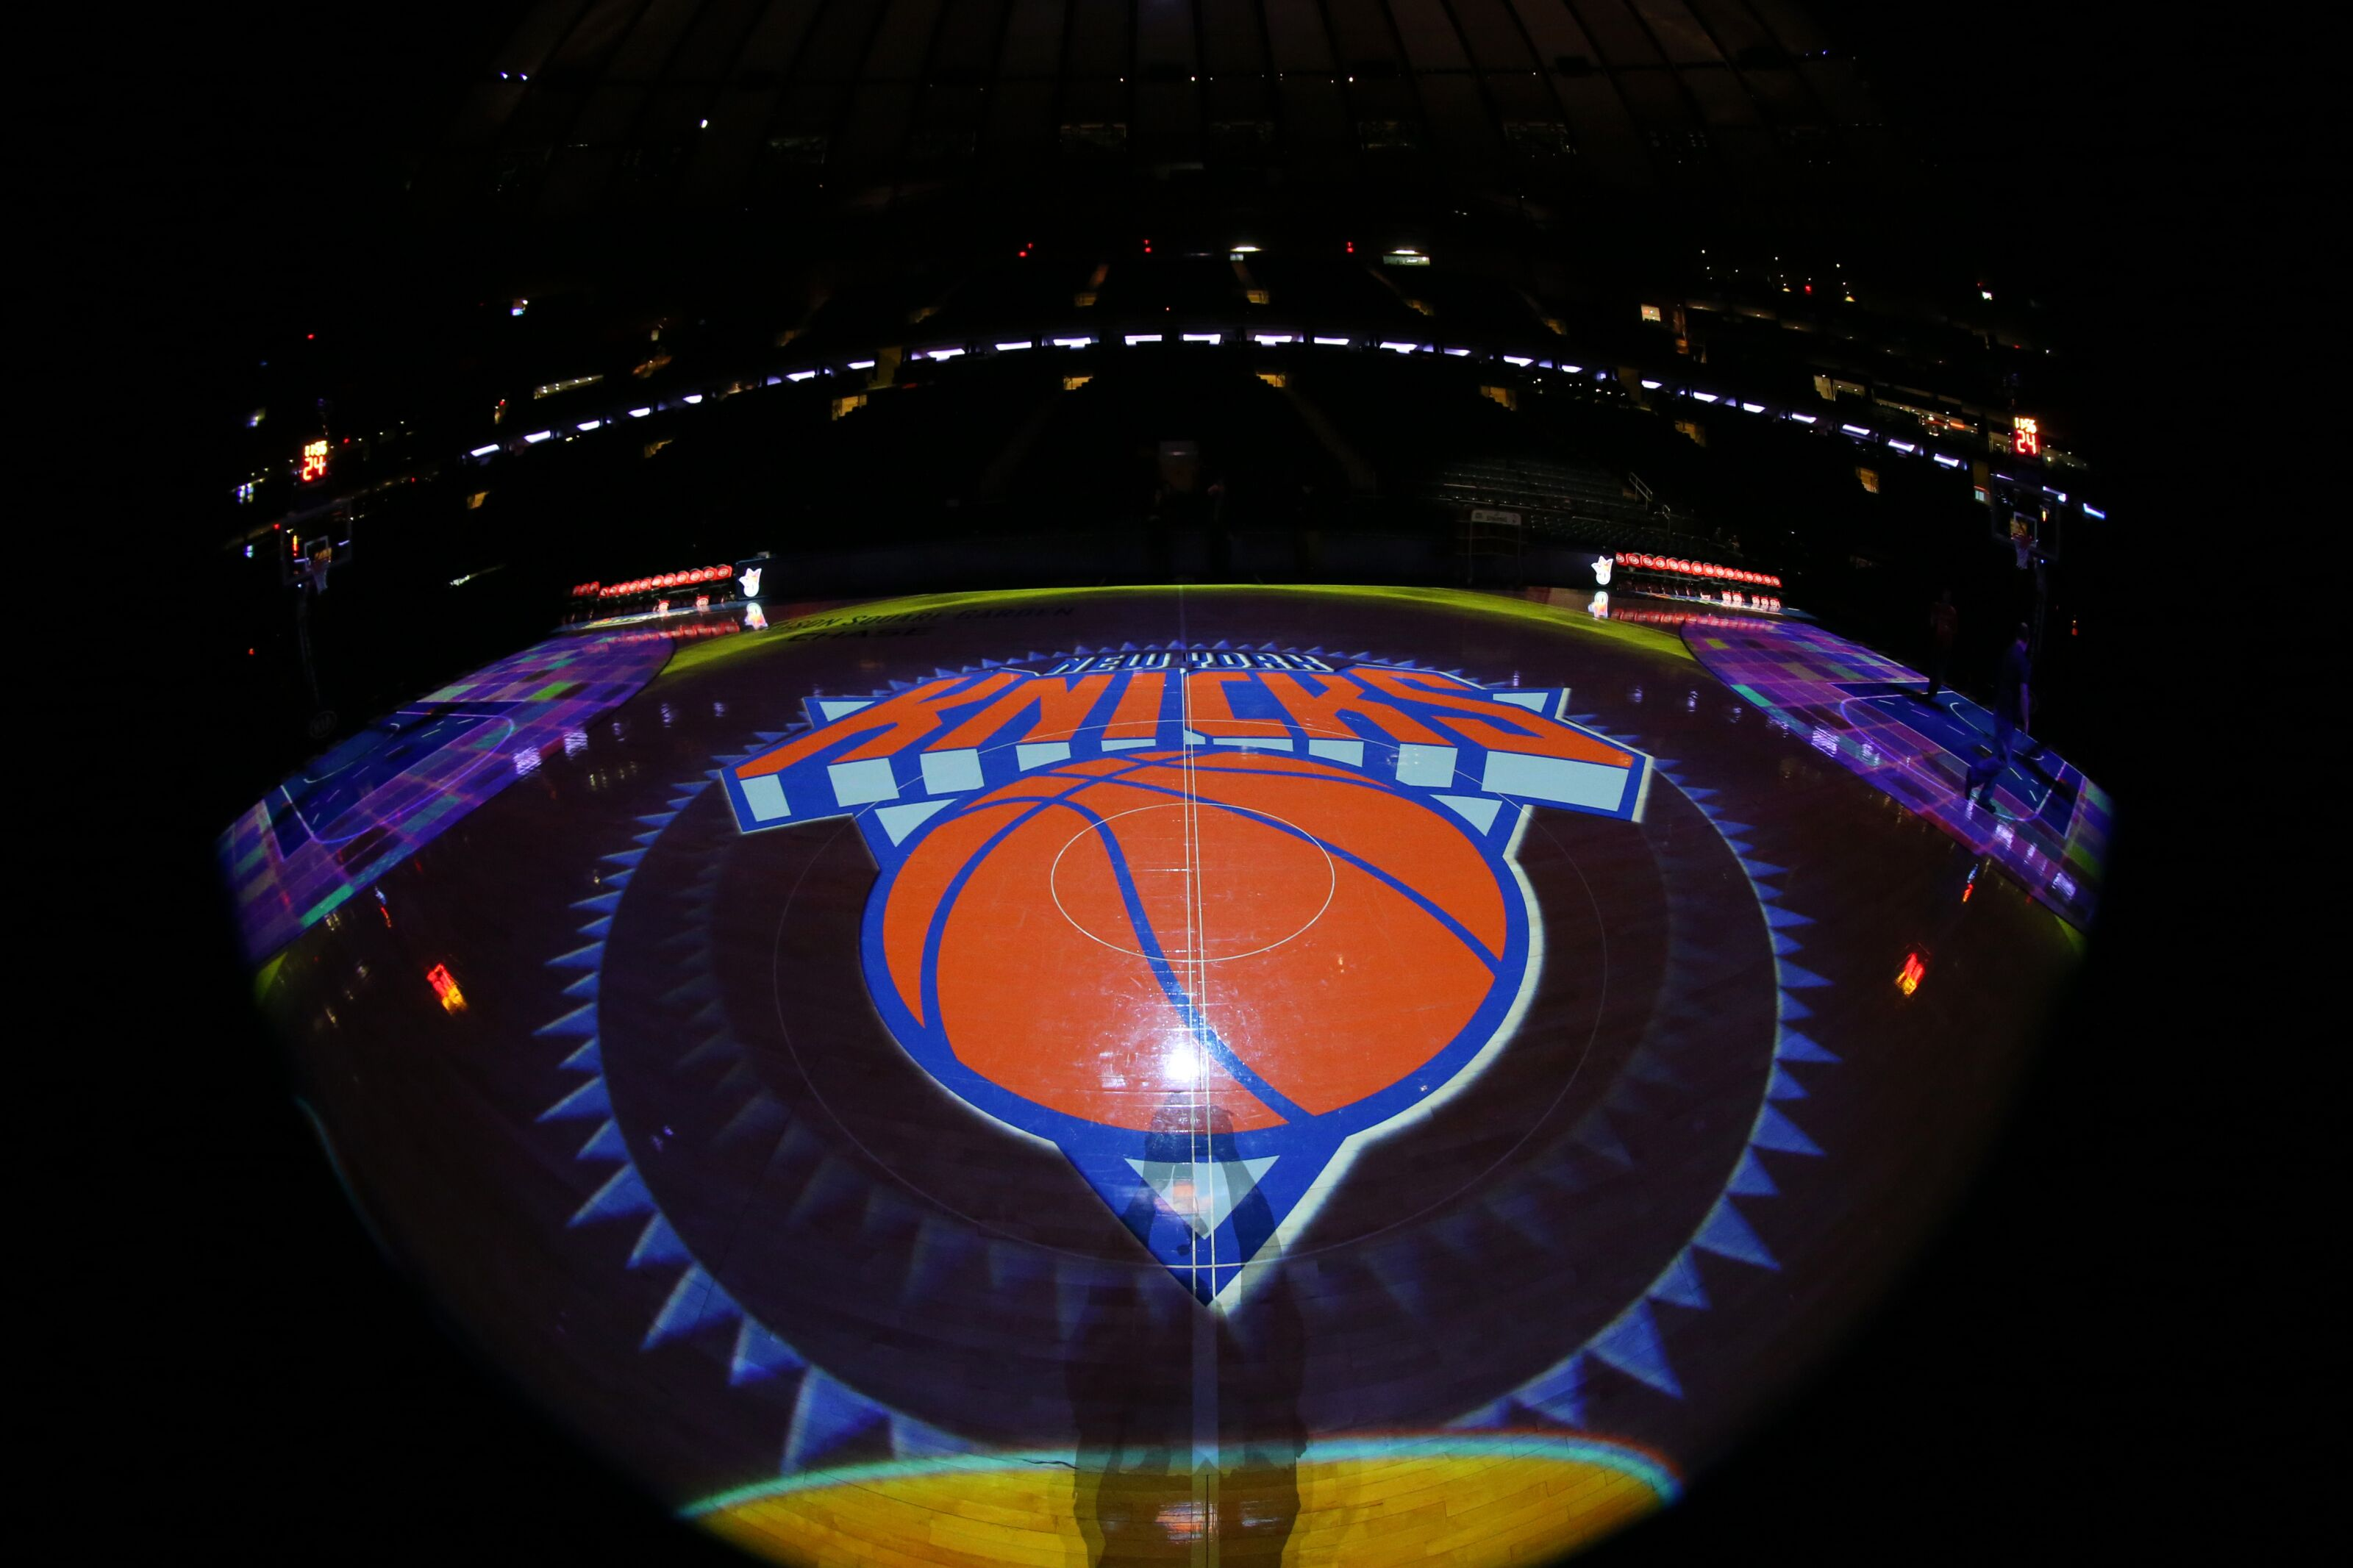 New York Knicks: An impossible prediction for 2019-20 season